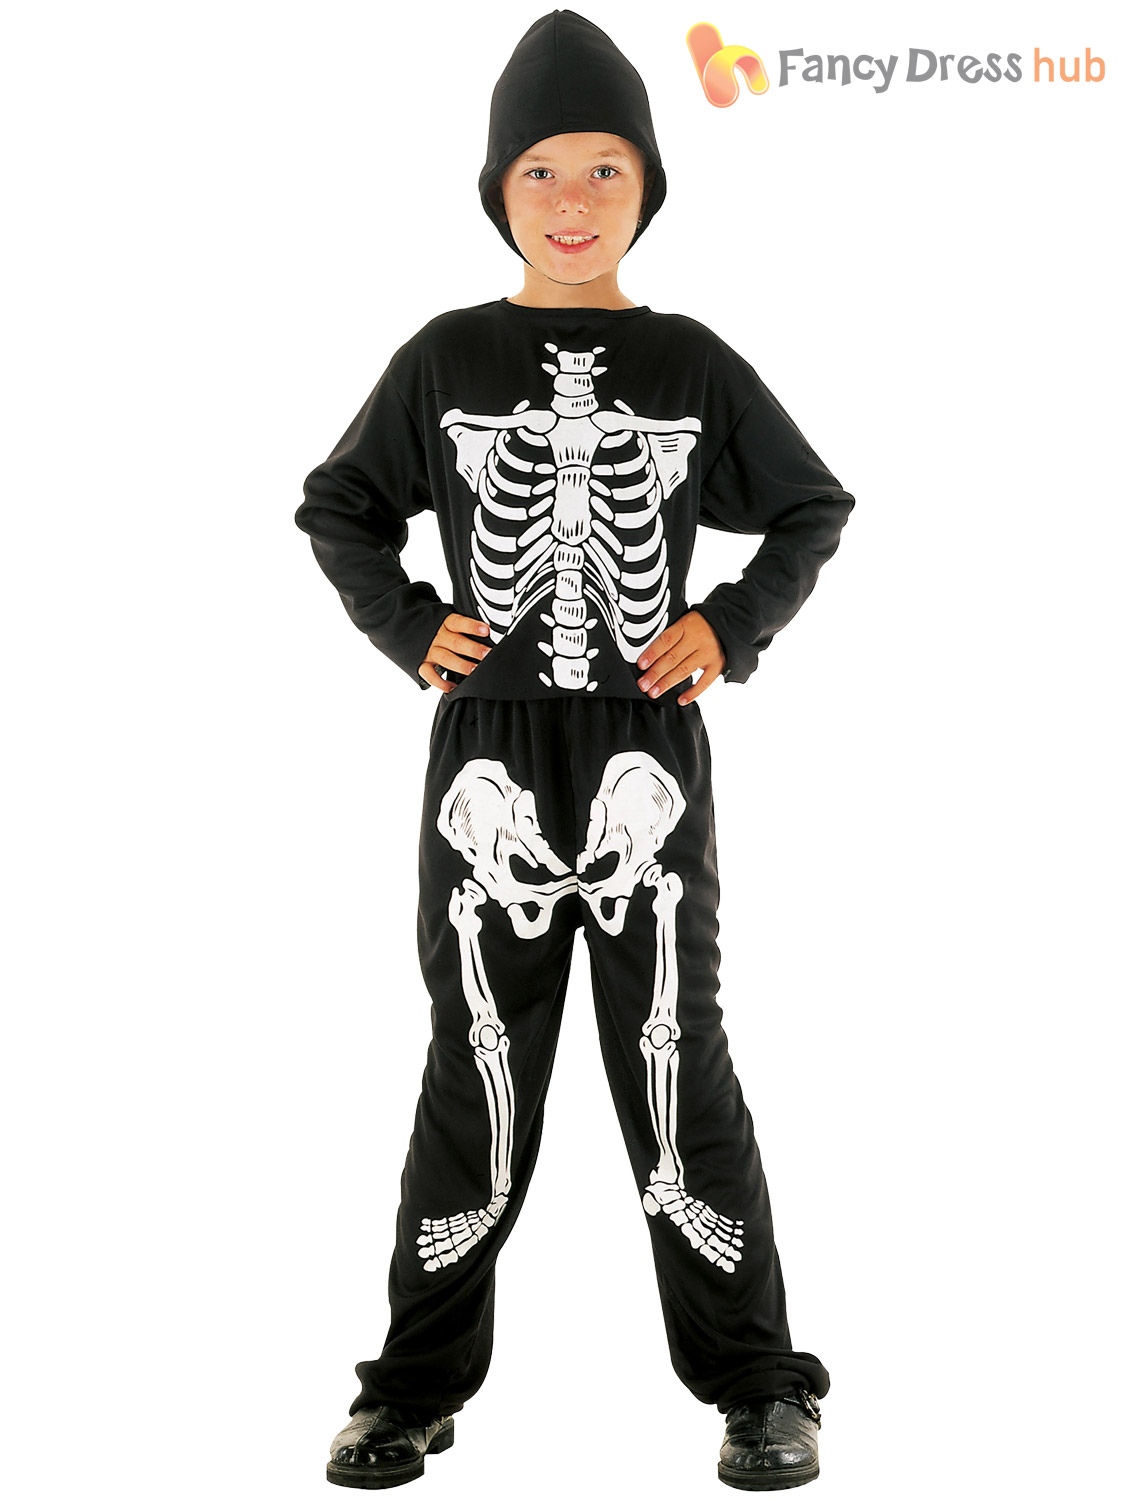 This scary Skeleton Pirate Child costume will send shivers down your spine! With a light green, torn-up shirt revealing EVA bones, a red pirate belt, a PVC skull mask, and skeleton gloves, this little skeleton pirate is ready to plunder the seas.